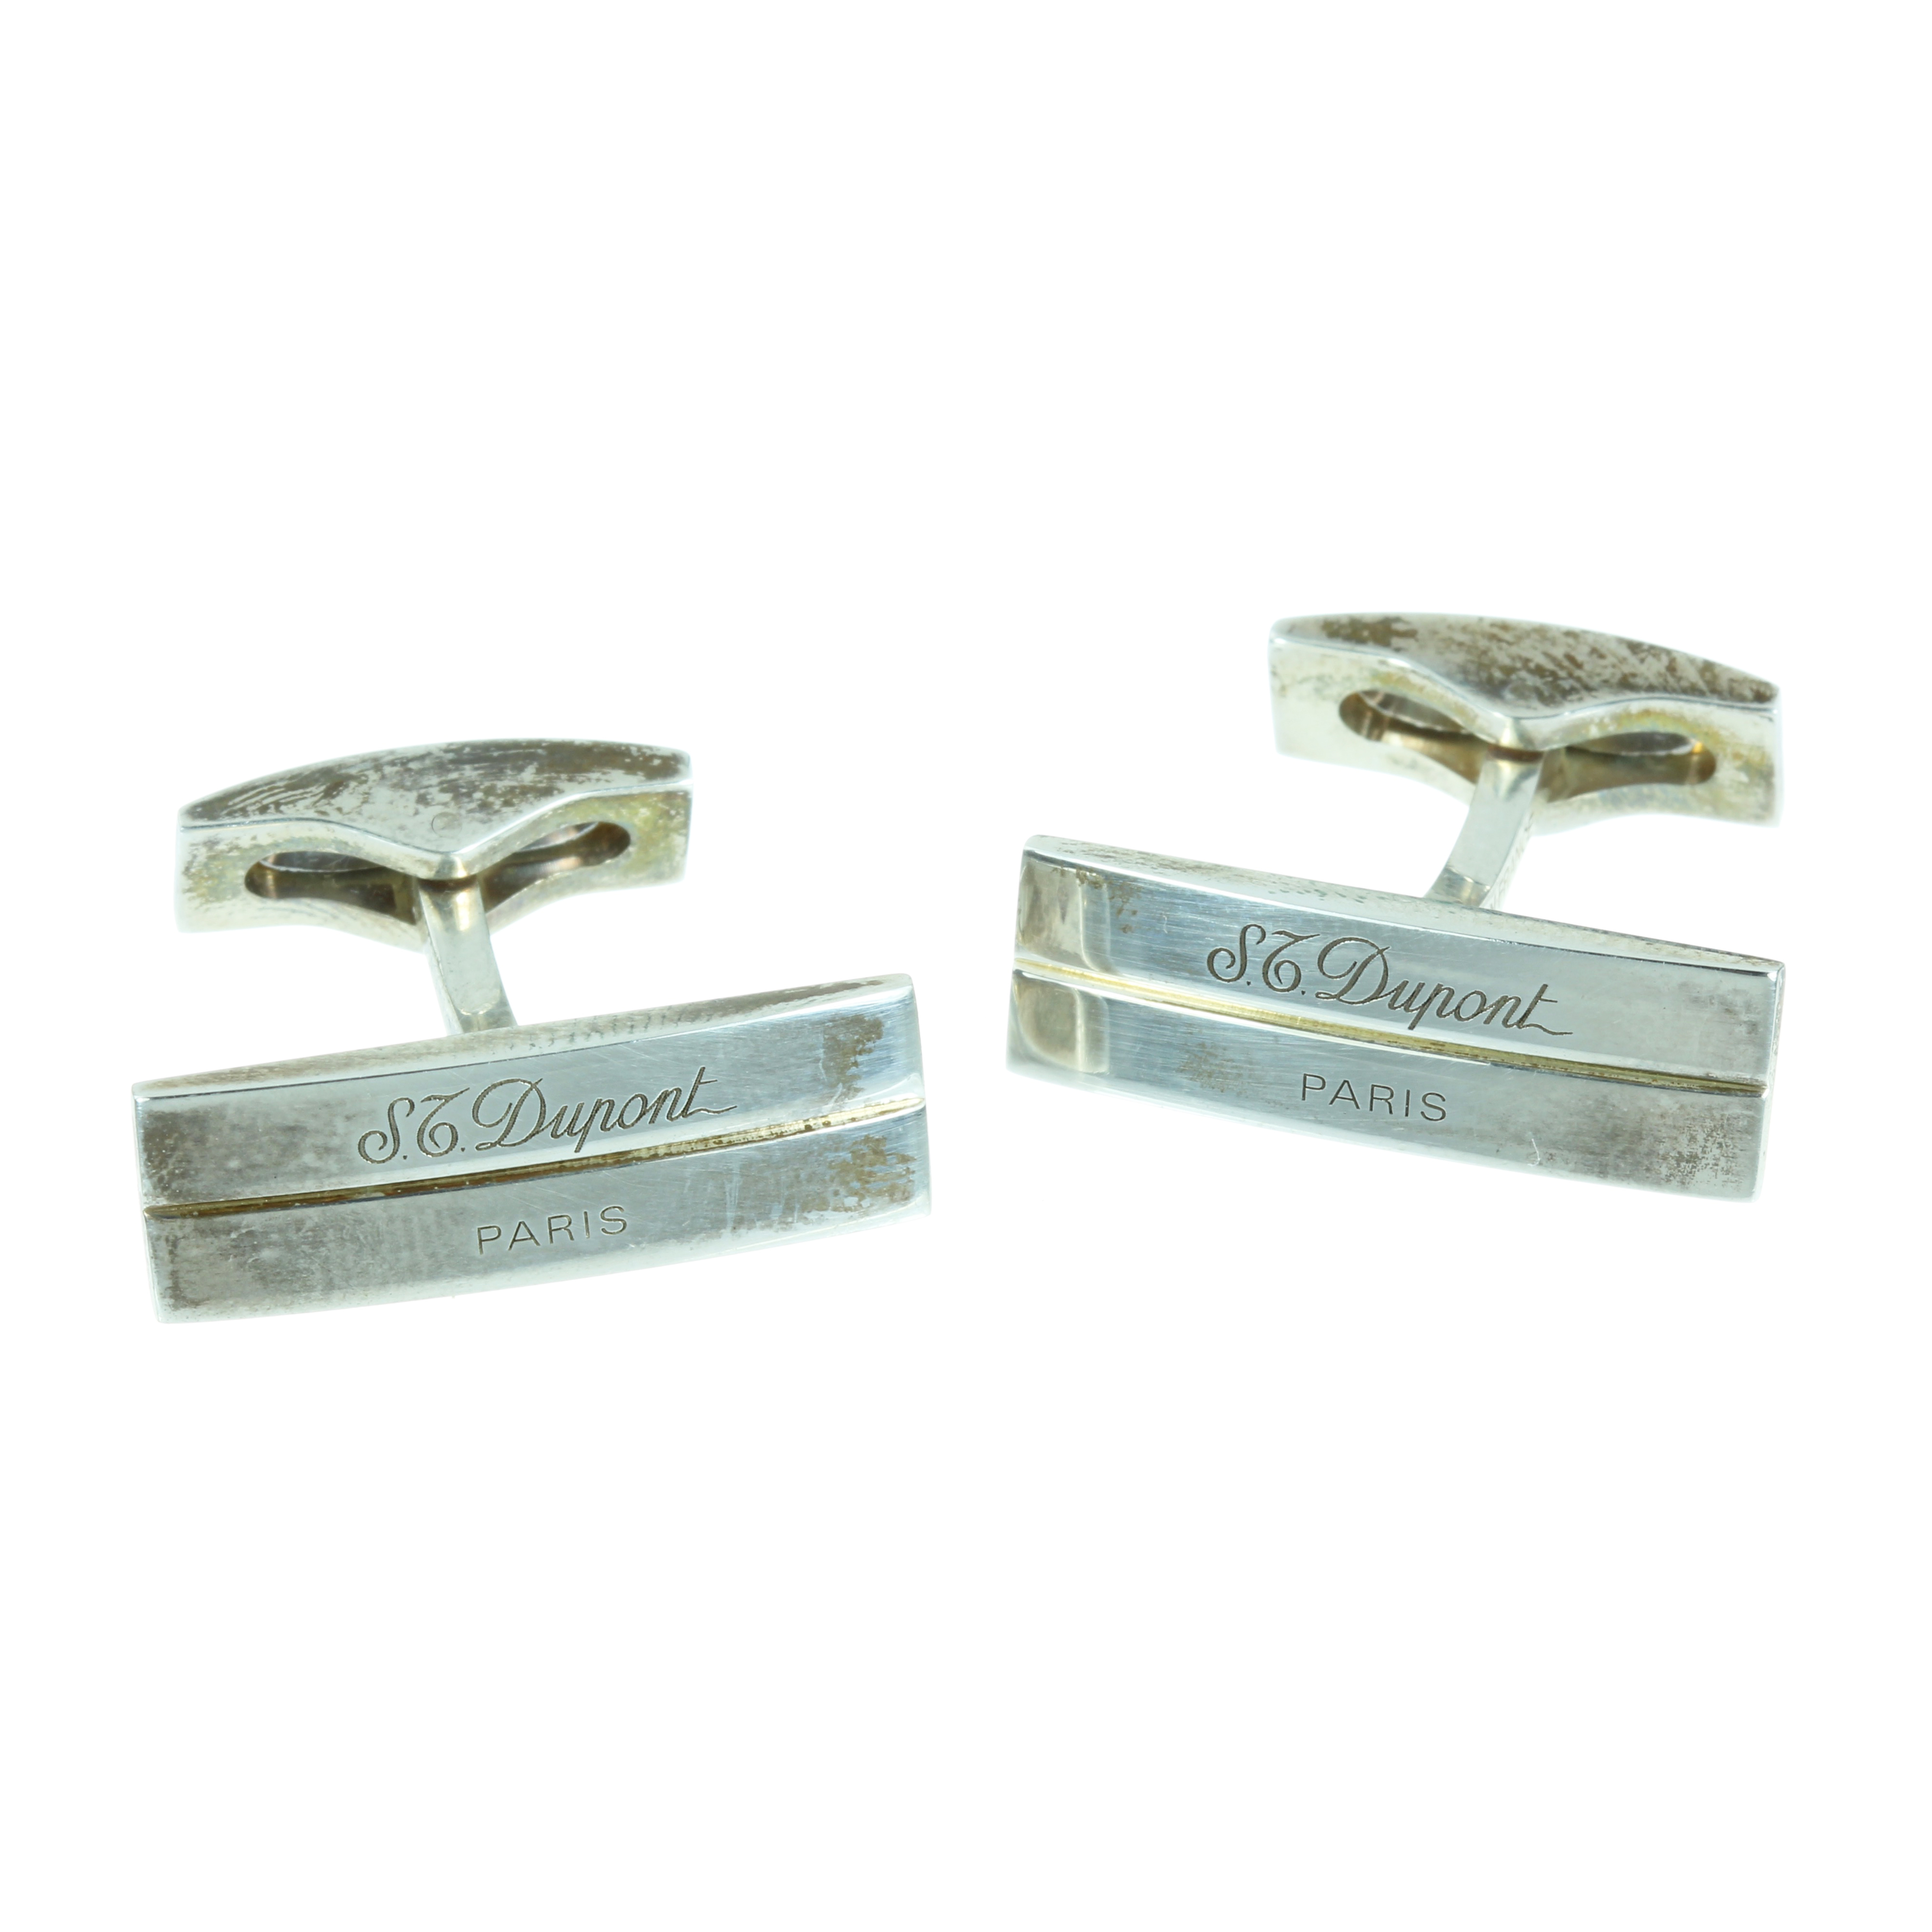 Los 37 - A PAIR OF CUFFLINKS BY DUPONT in sterling silver, each with an elongated rectangular face, signed